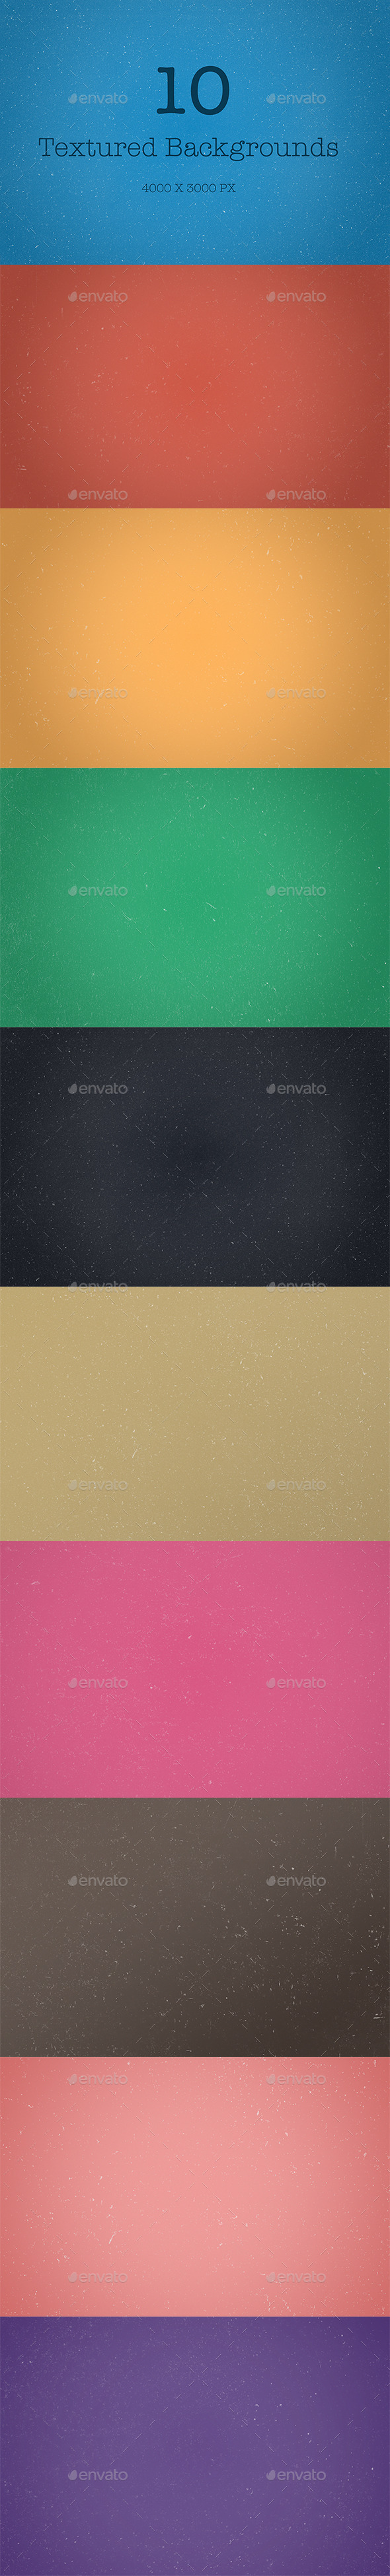 GraphicRiver 10 Textured Backgrounds 9332147